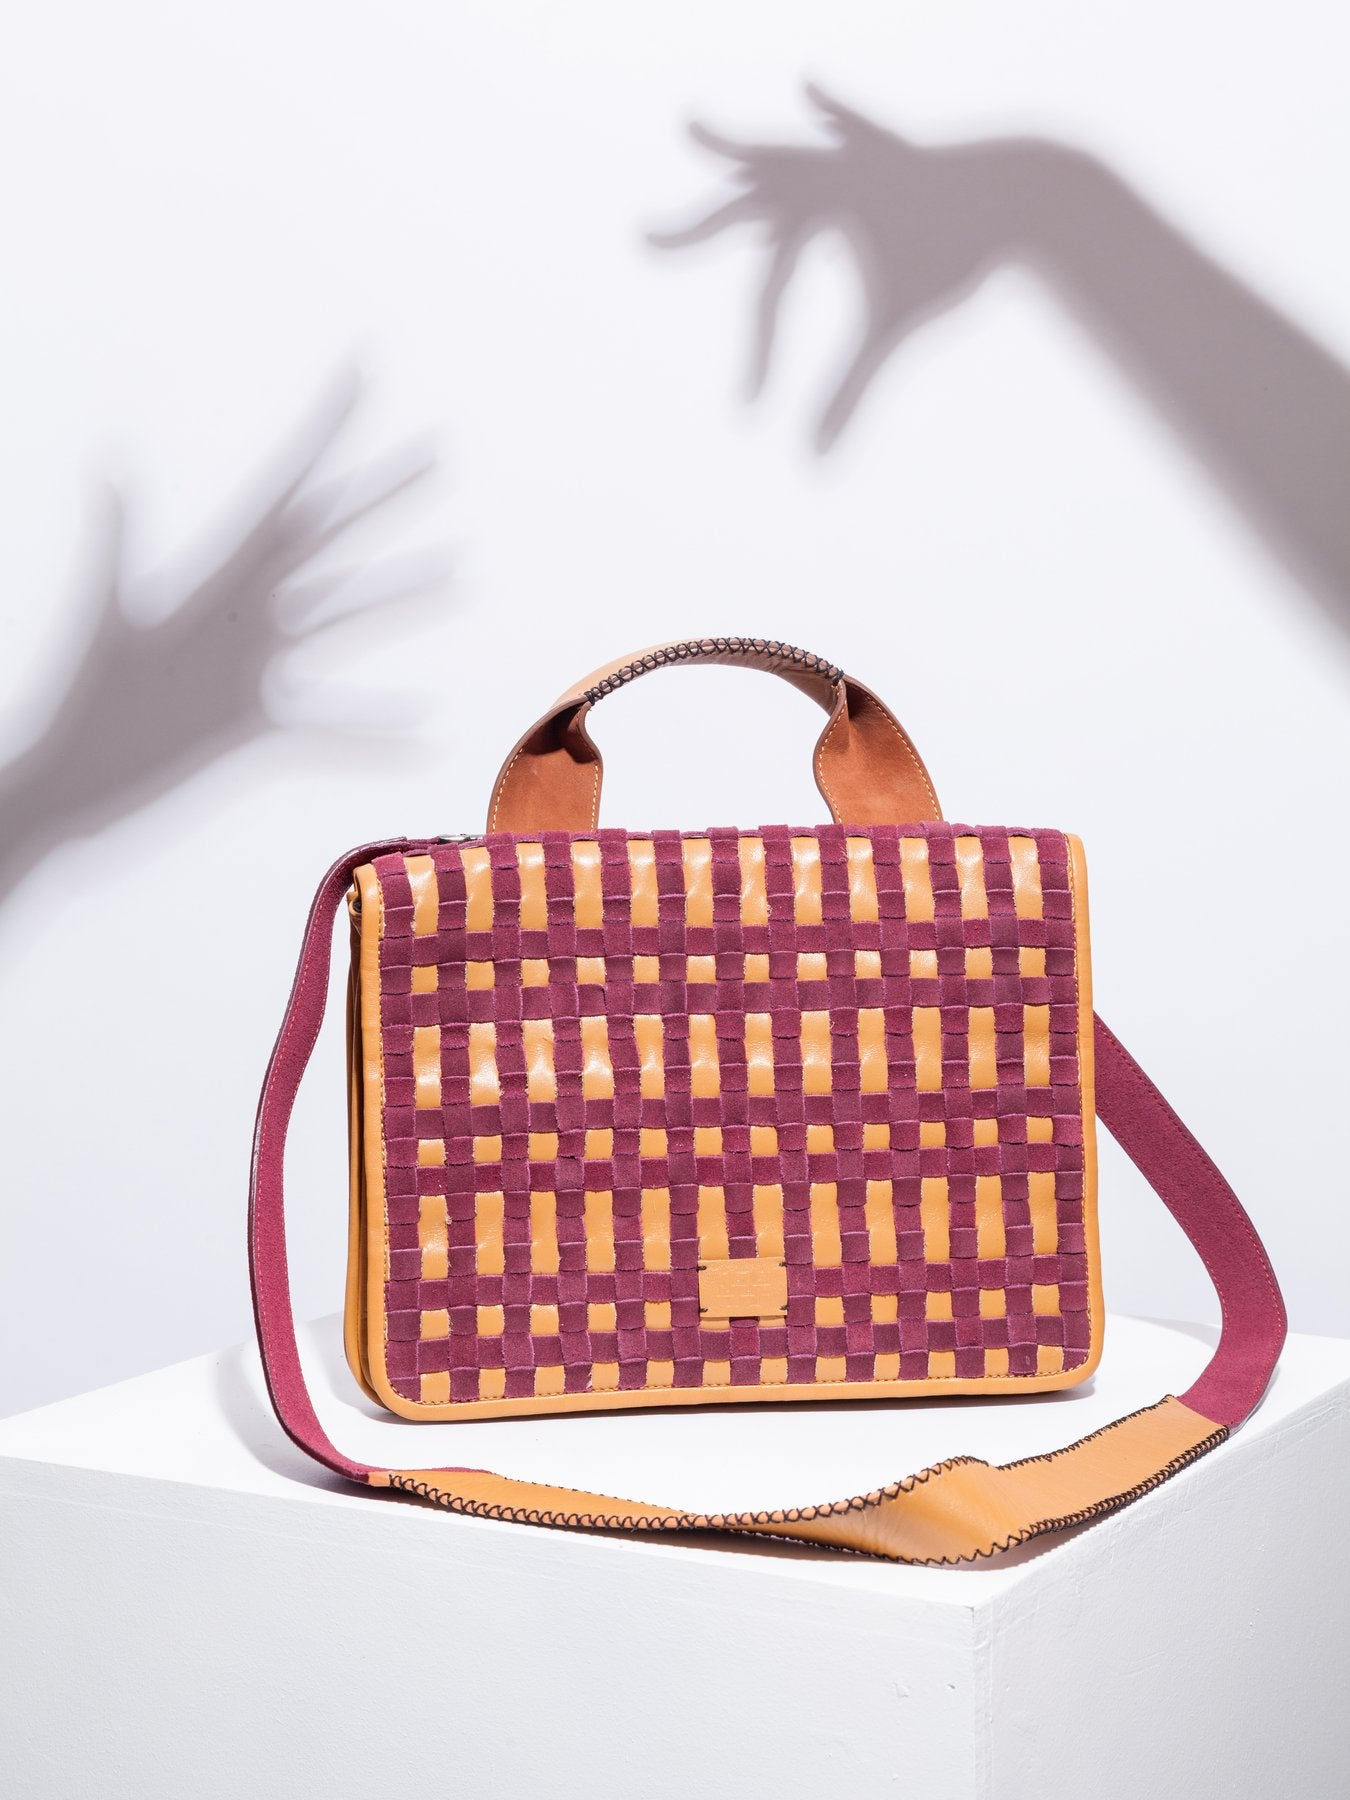 Chequer Tan and Burgundy Bag